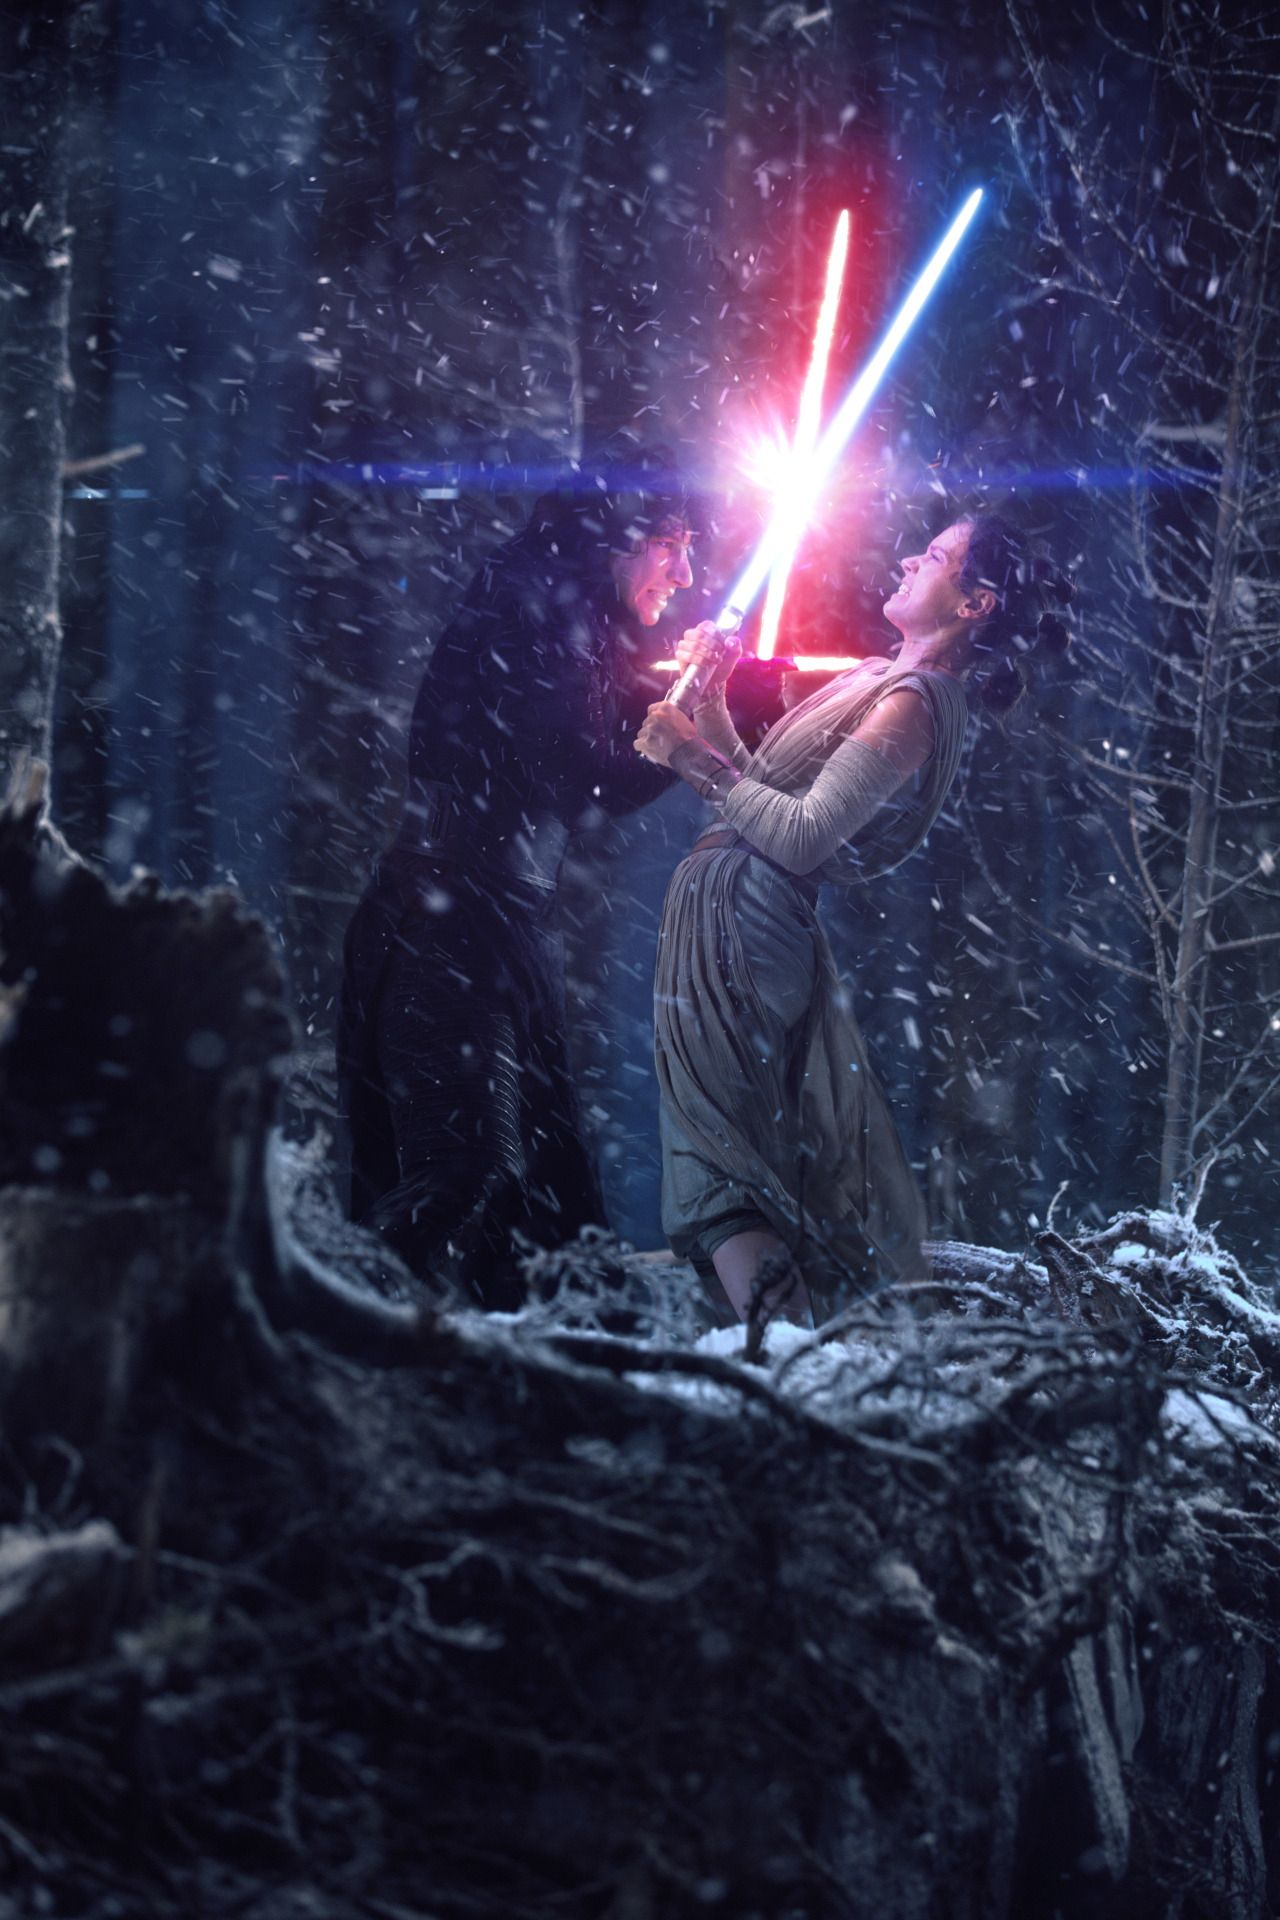 Star Wars: The Force Awakens | Kylo Ren and Rey duel on Starkiller Base